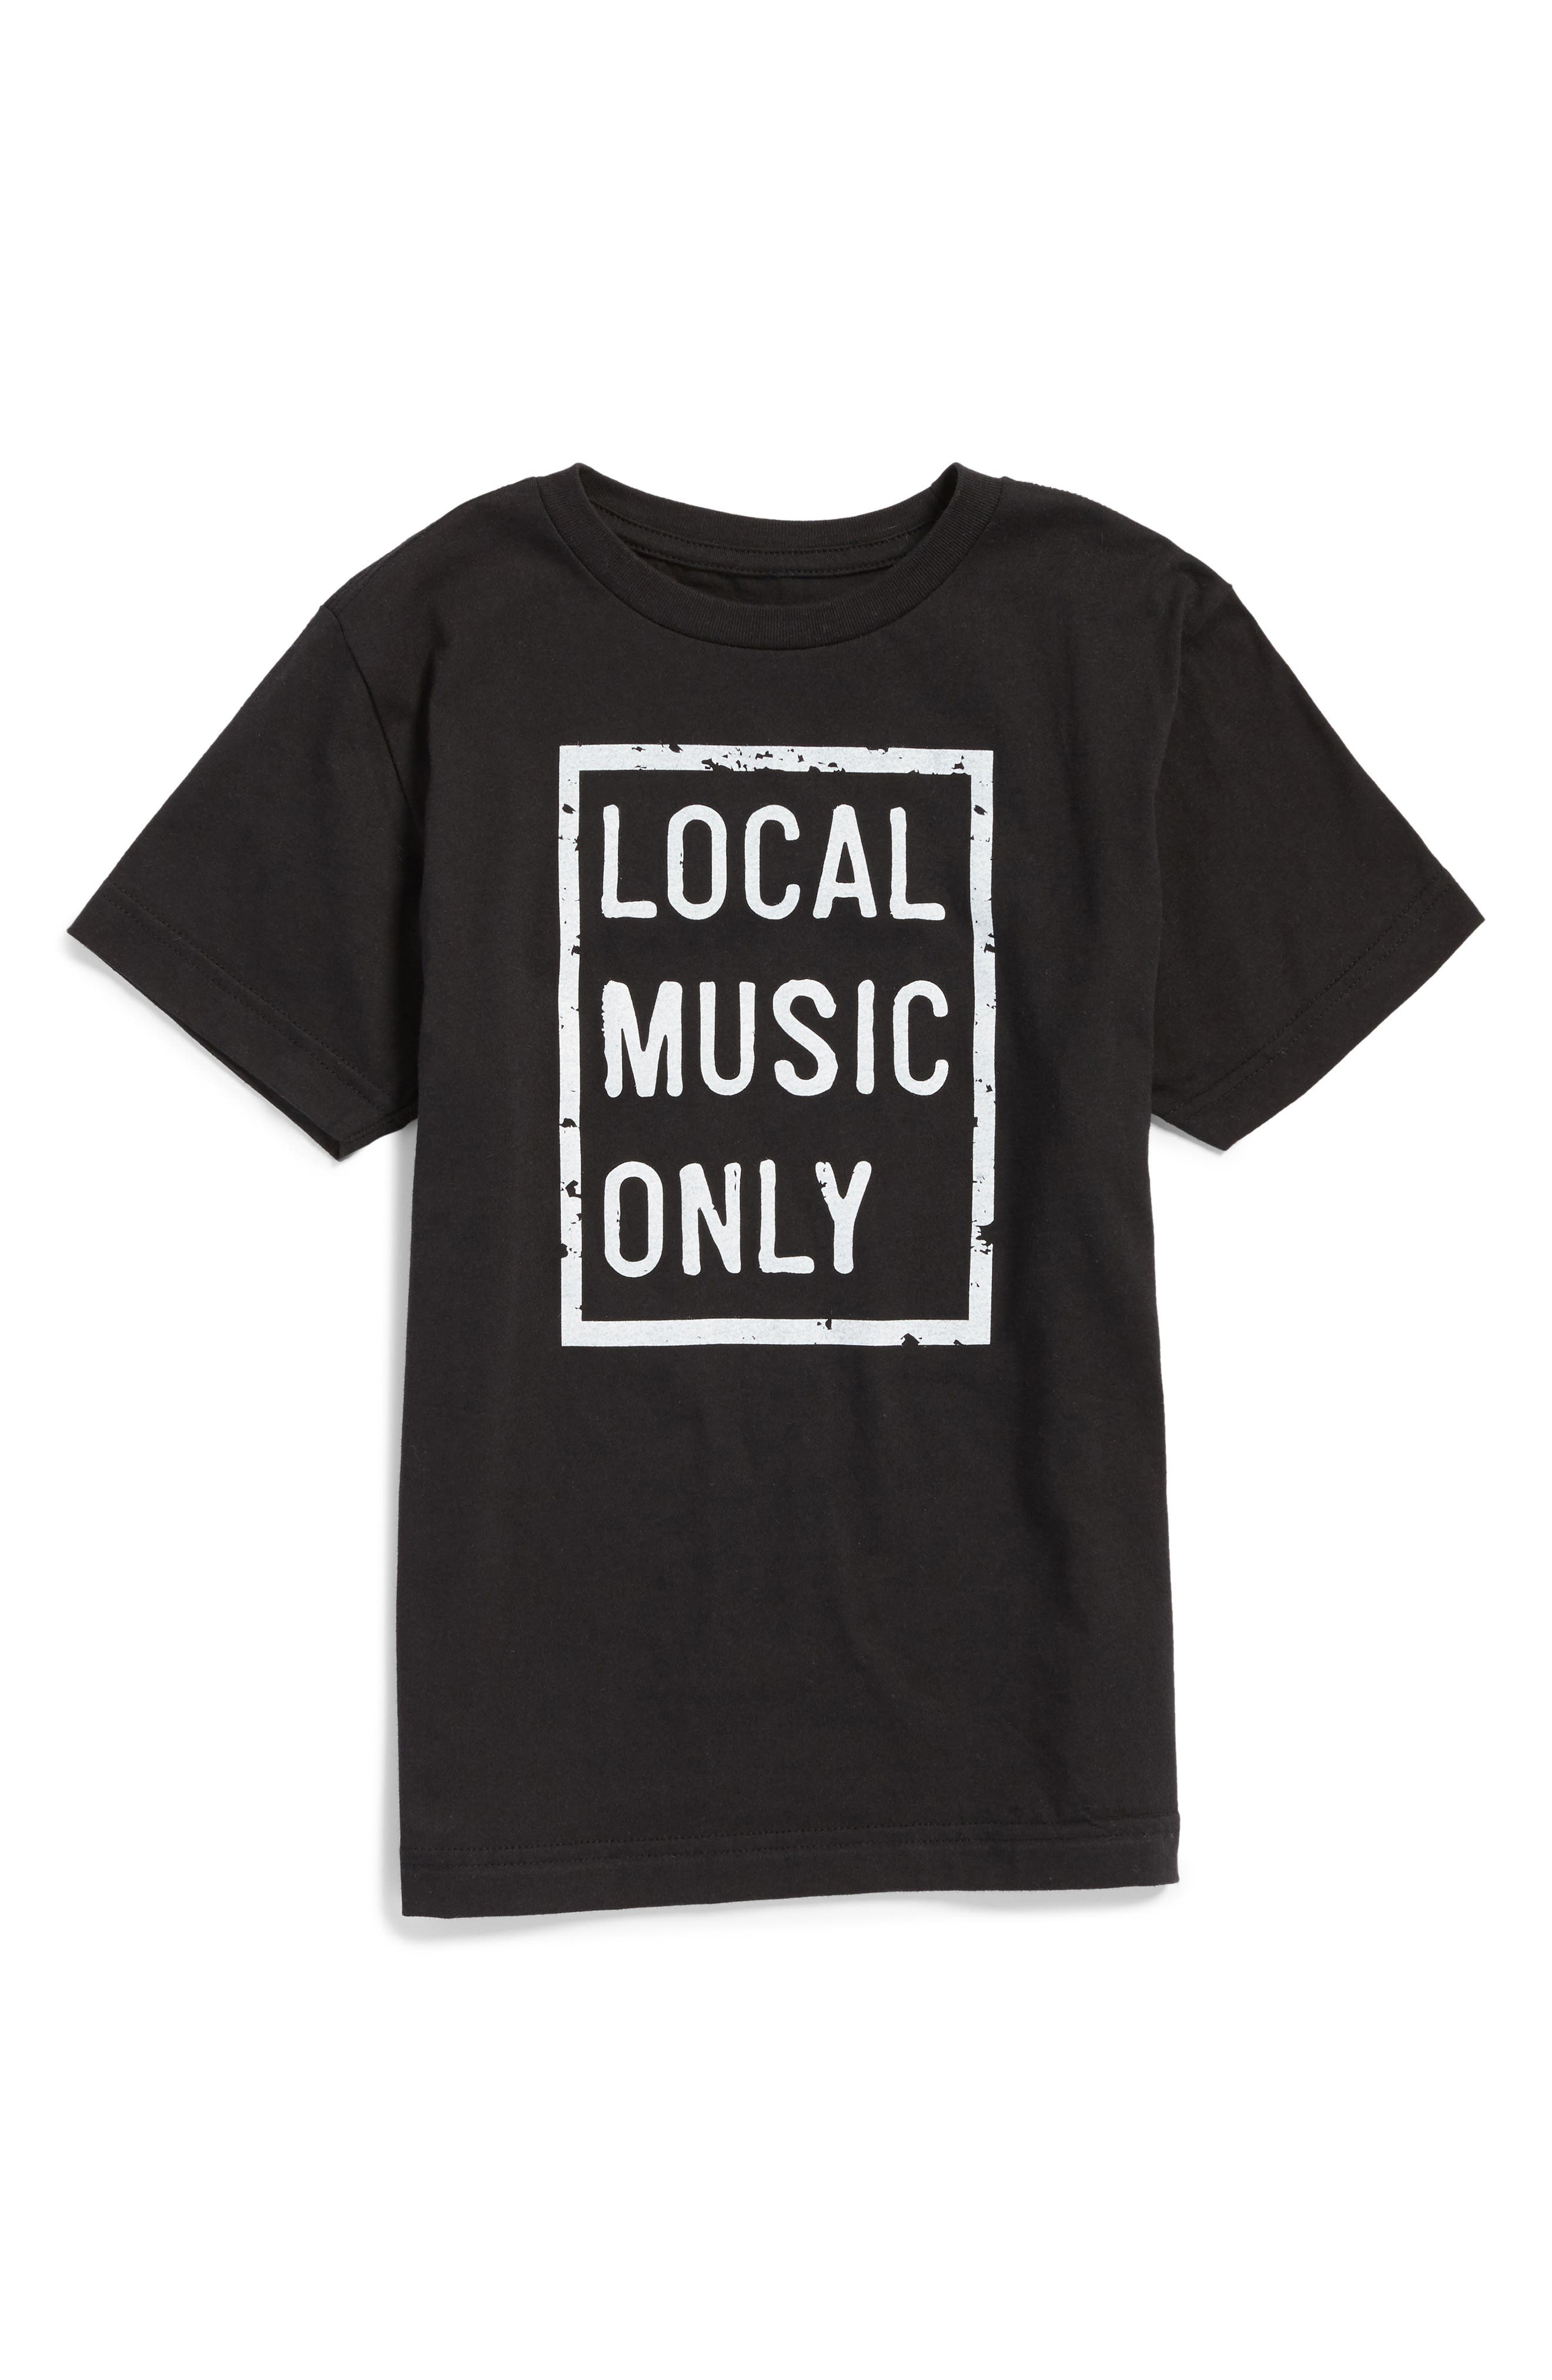 Local Music Only Graphic T-Shirt,                             Main thumbnail 1, color,                             001